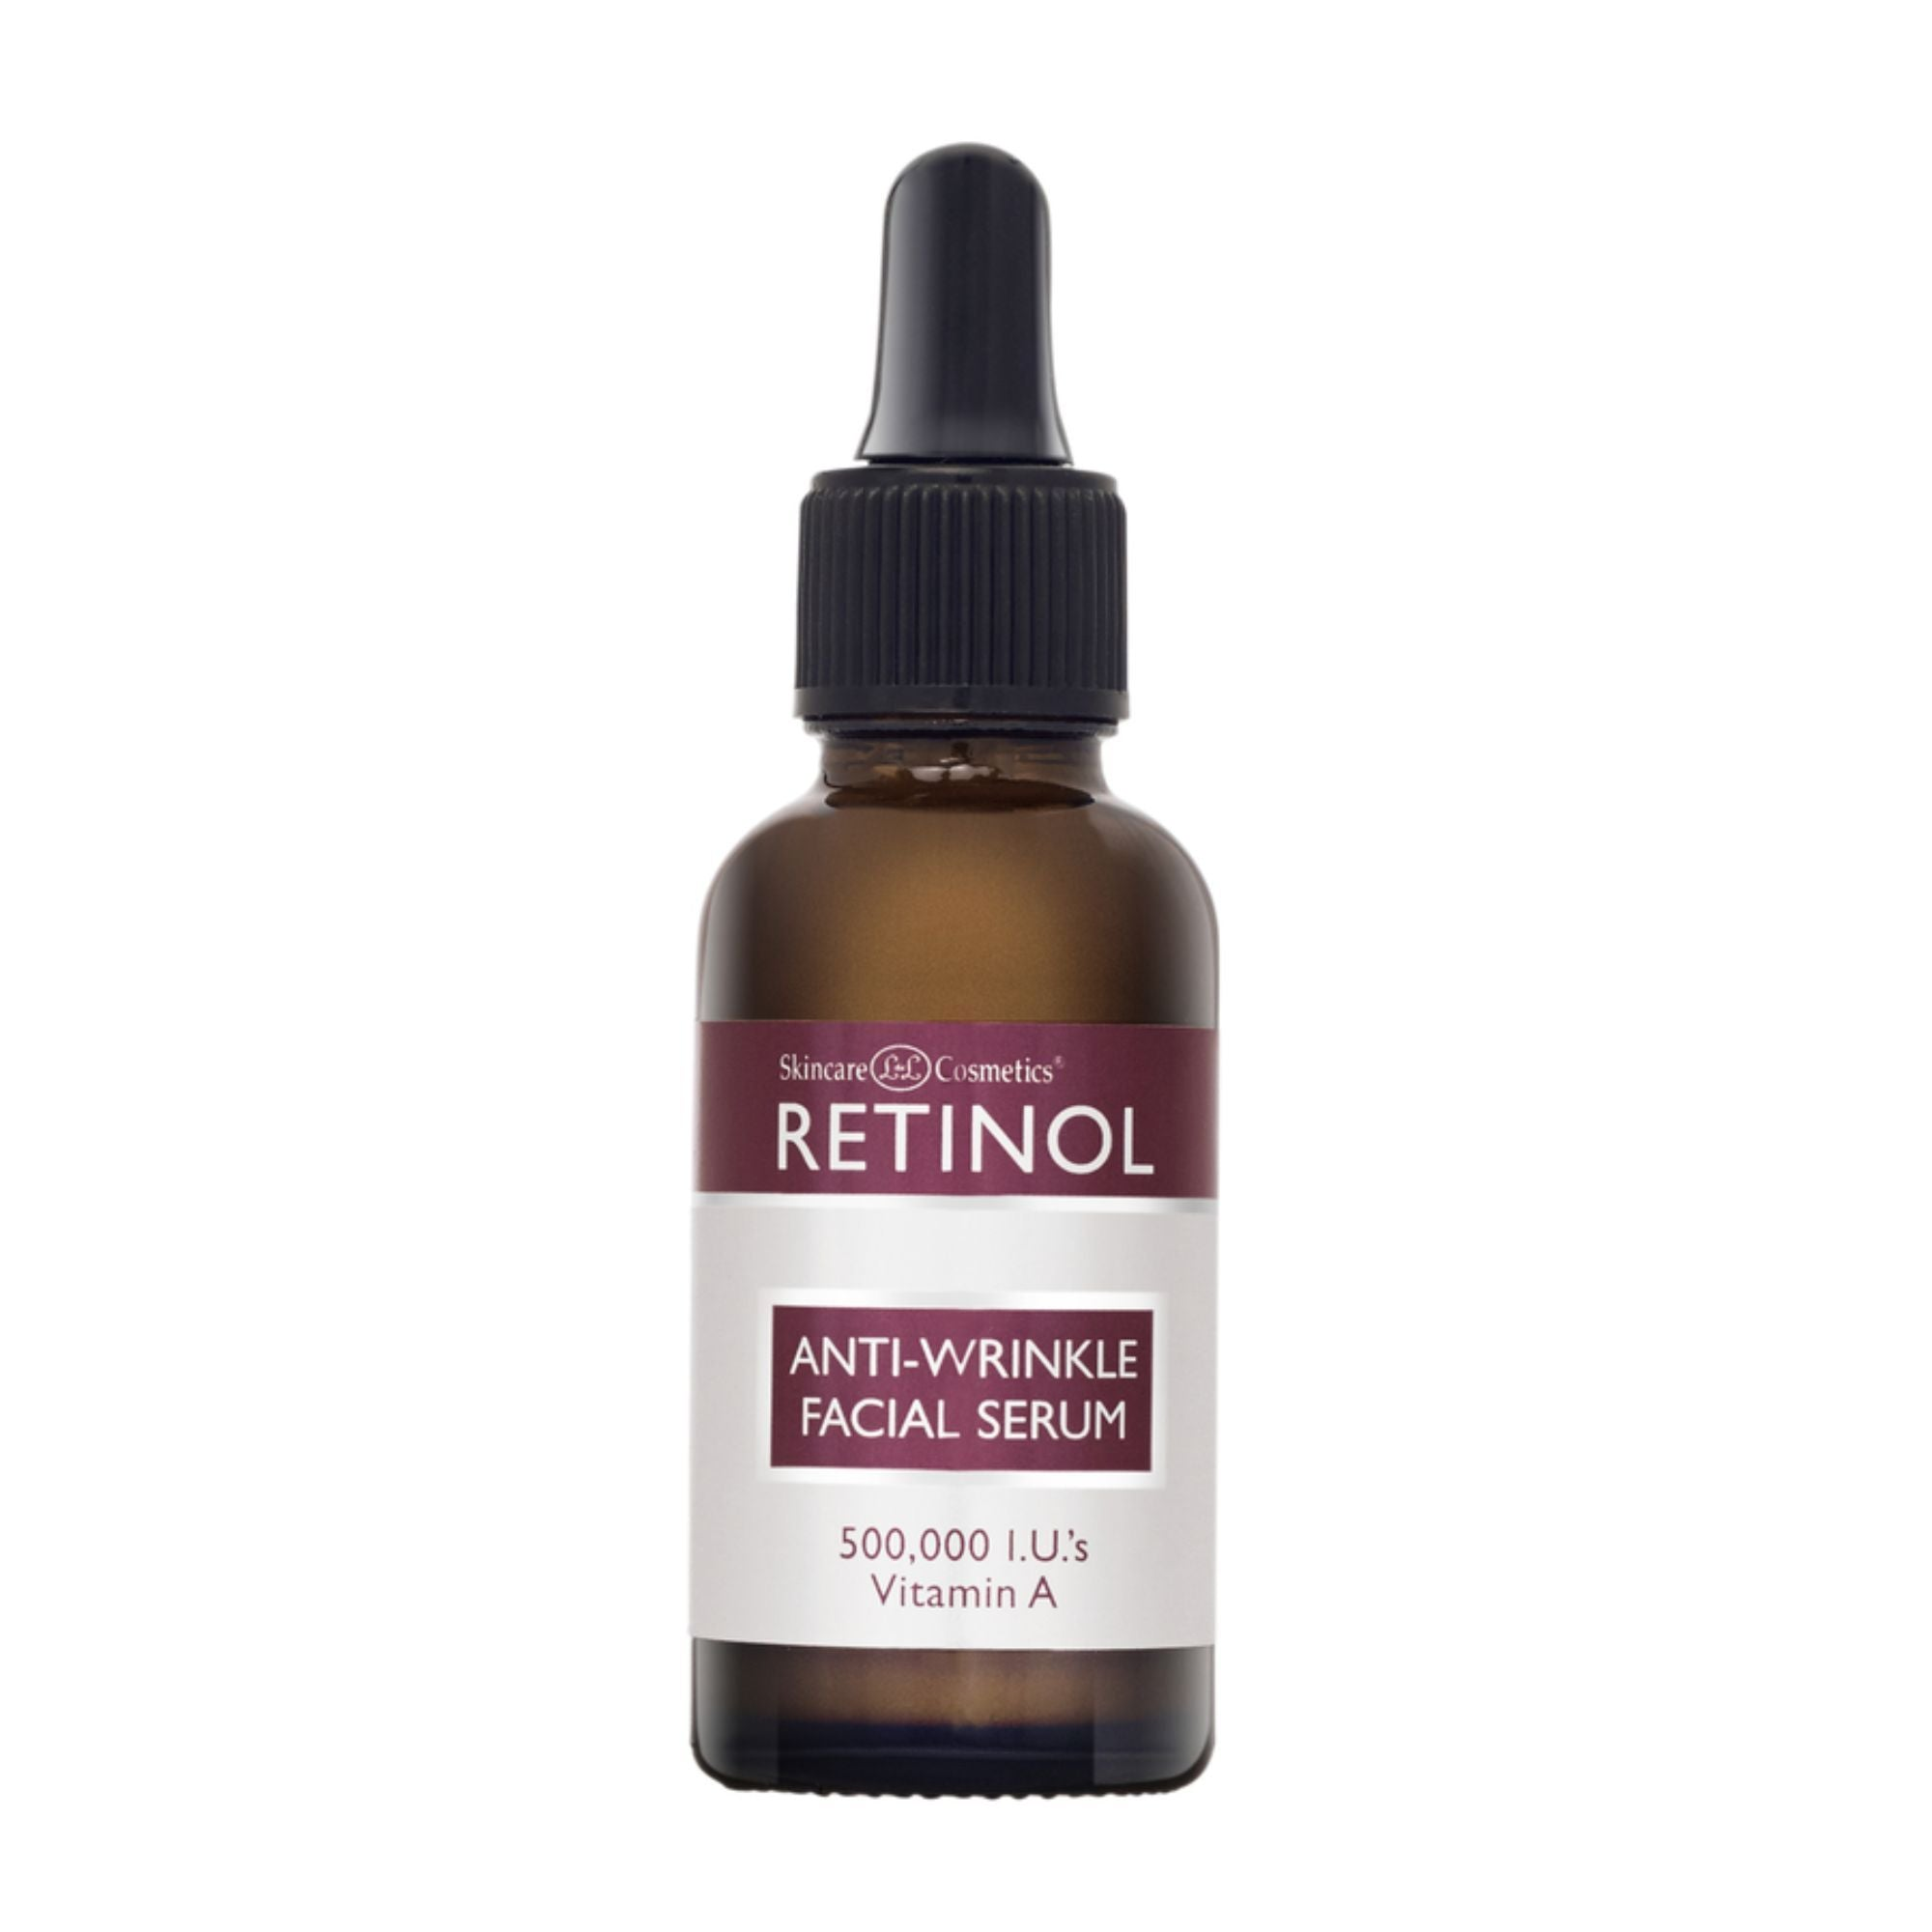 Anti Wrinkle Facial Serum